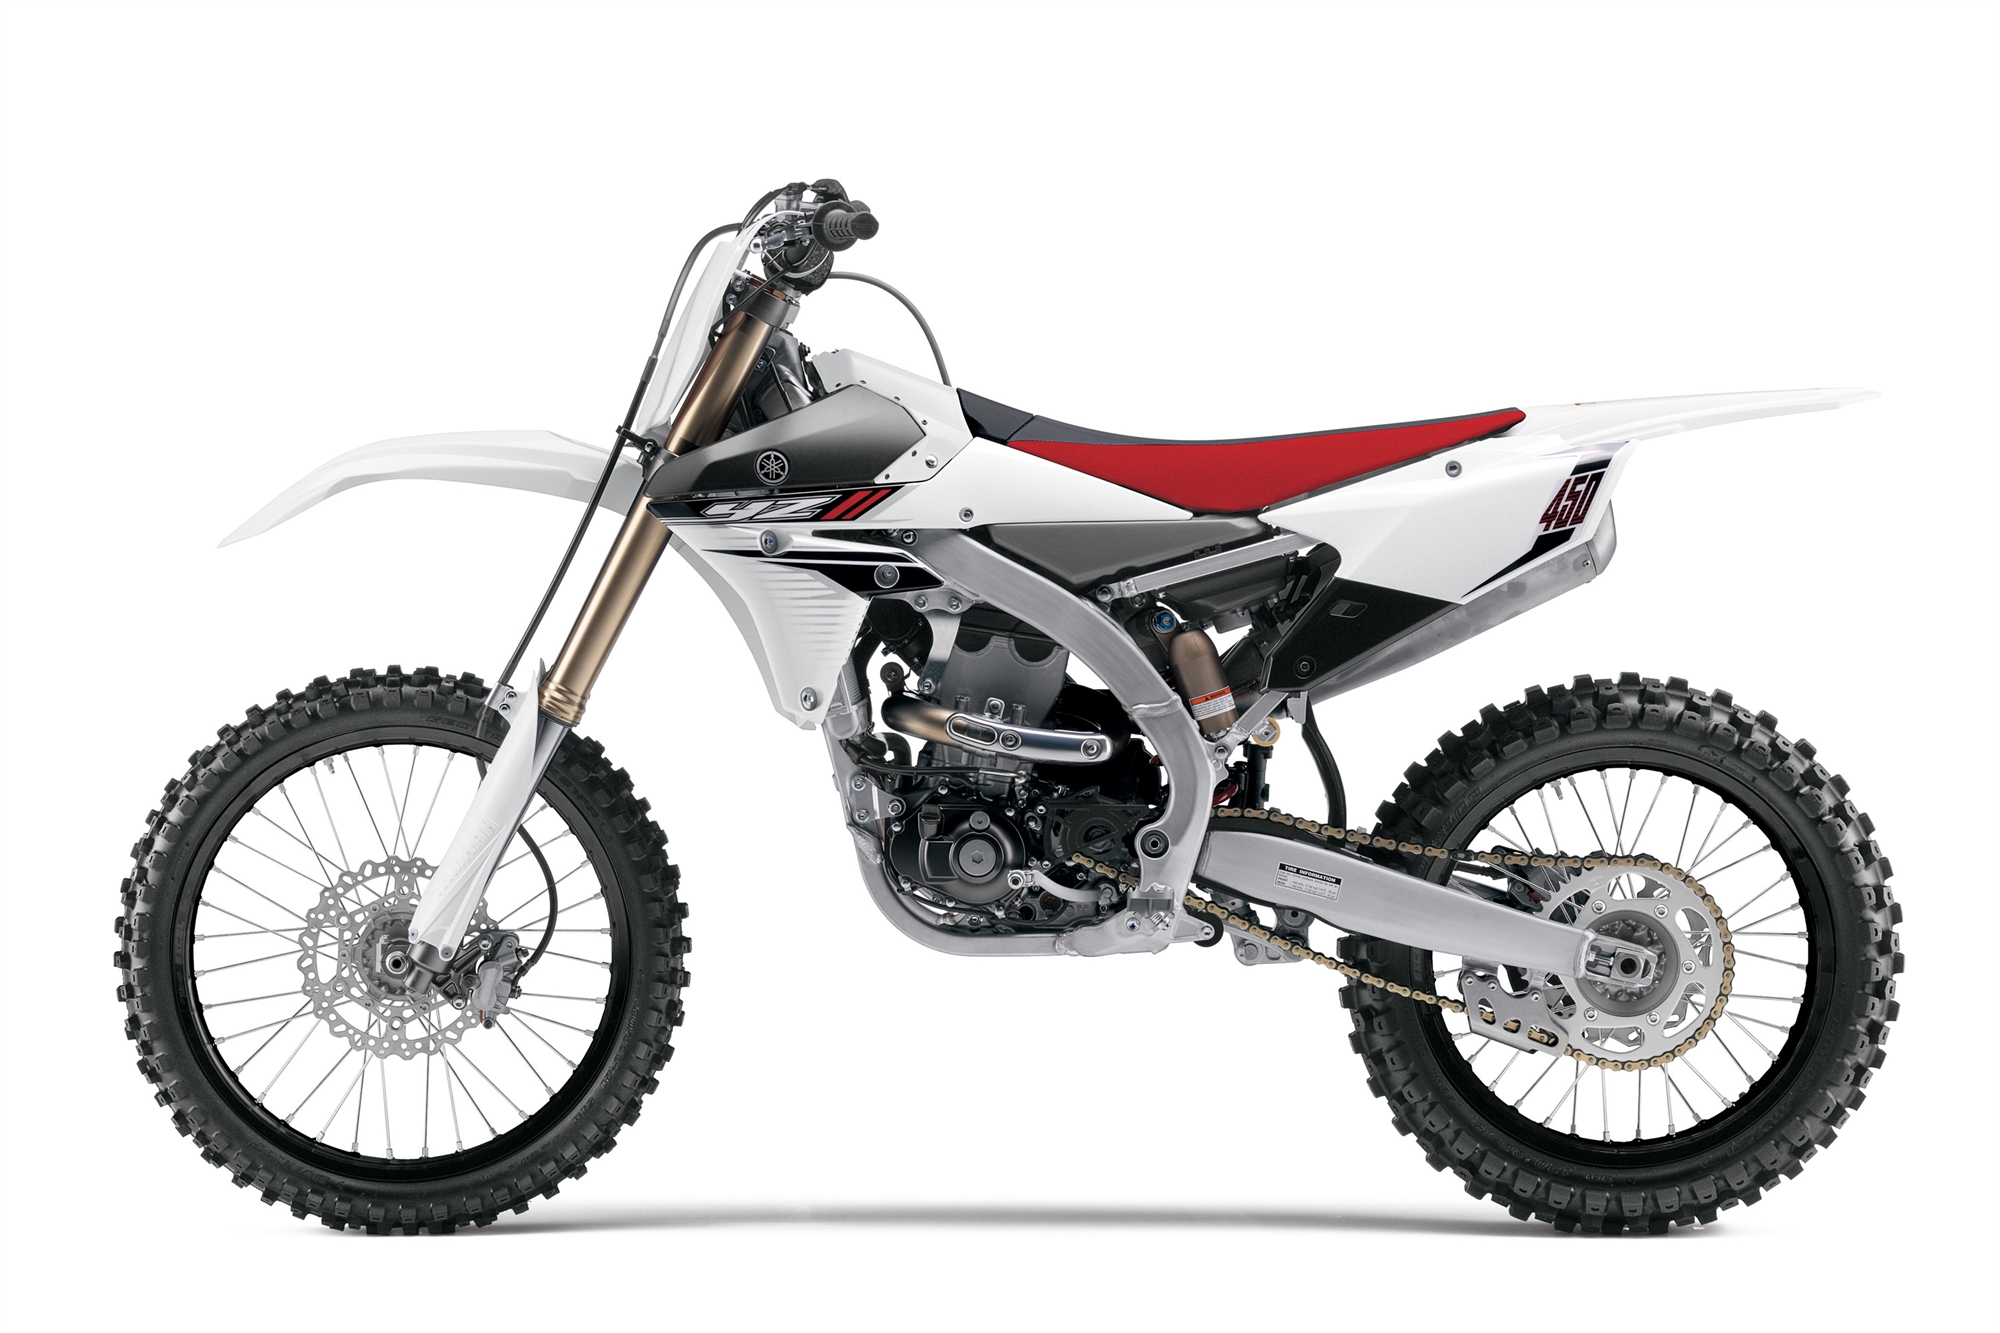 2013 Yamaha Yz 450 F Pics Specs And Information